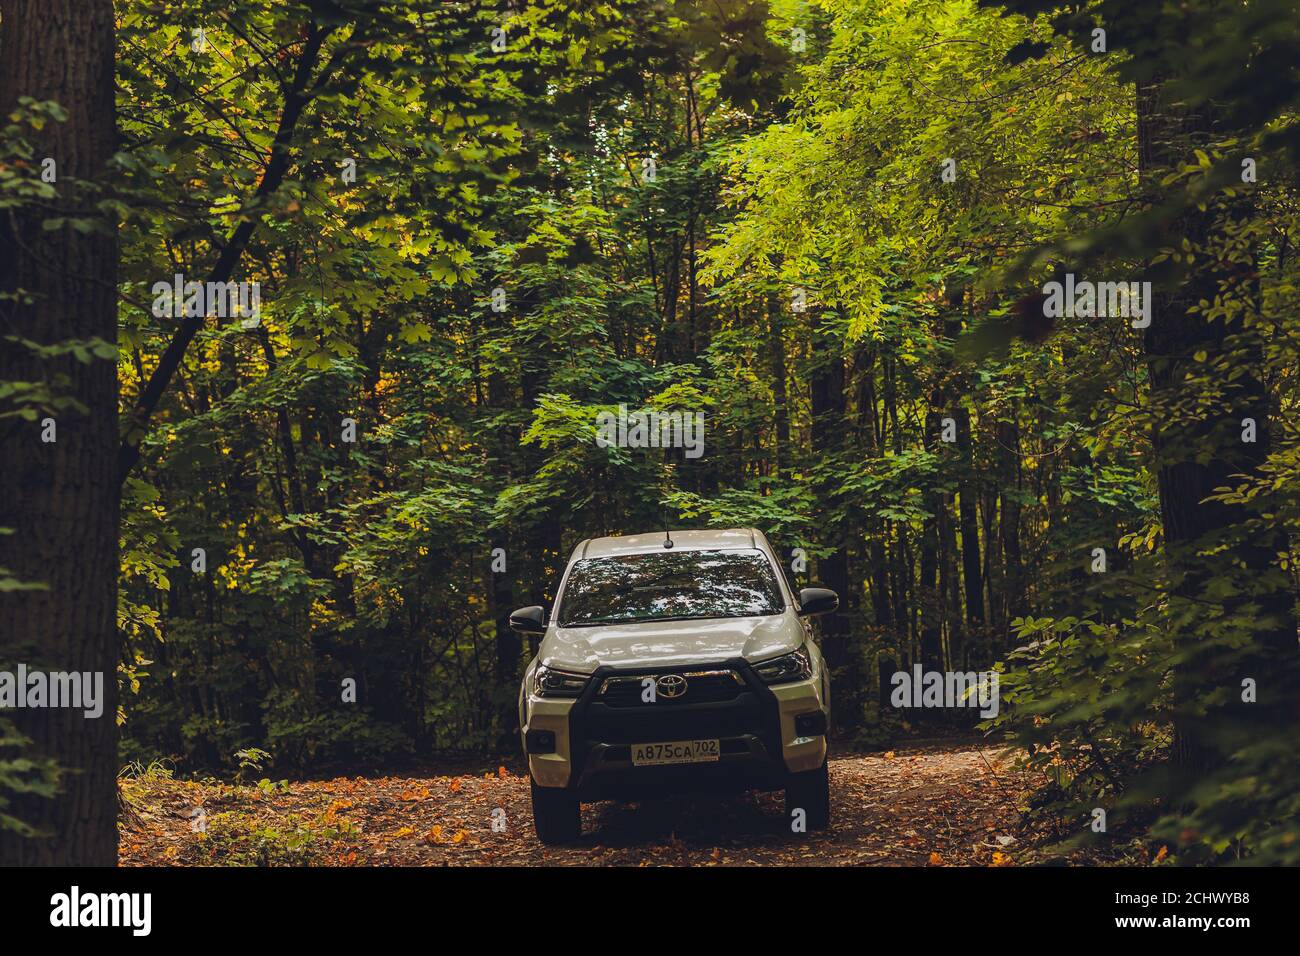 Ufa Russia 3 June 2020 Toyota Hilux Suv Truck In White Color On The Street Road 3 June 2020 Stock Photo Alamy